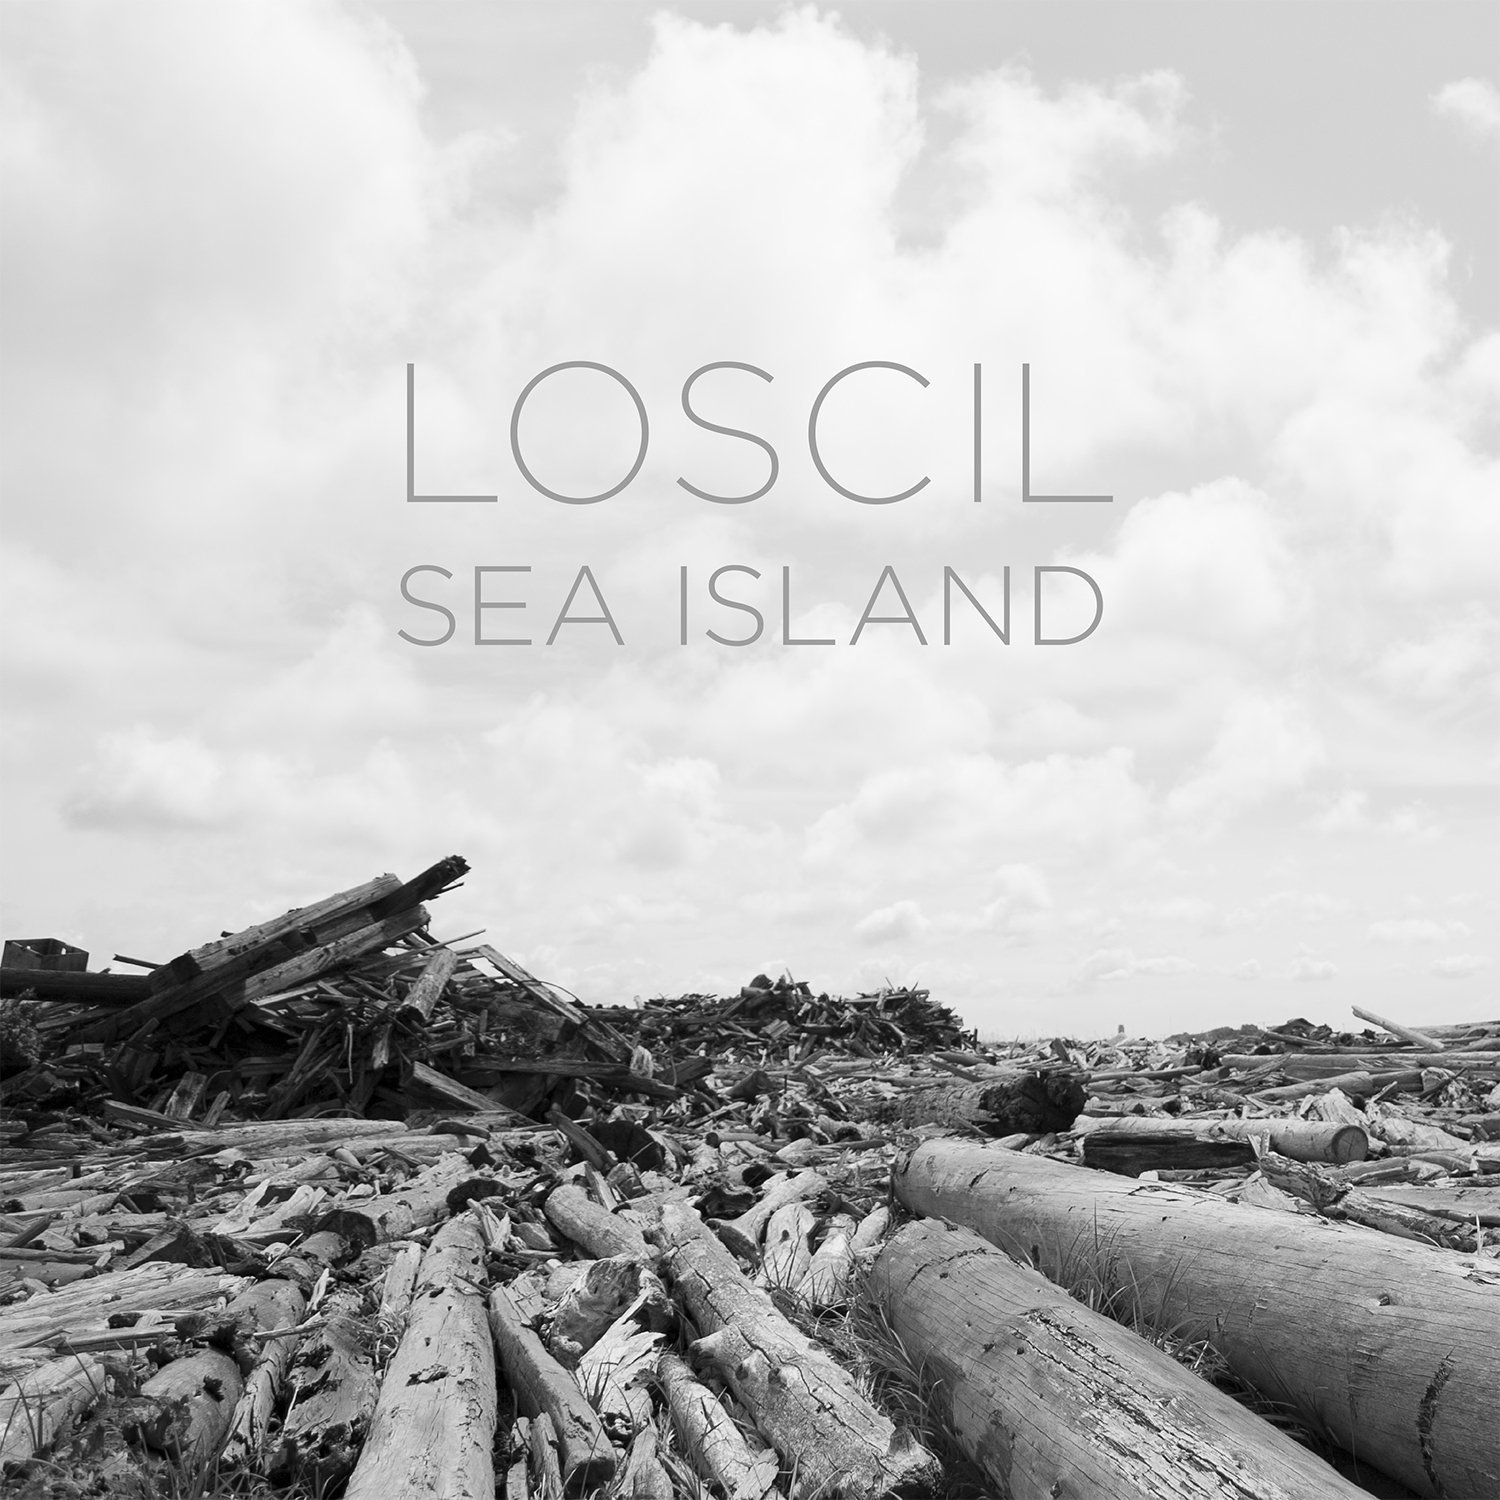 Sea Island By Loscil Reviews And Tracks Metacritic